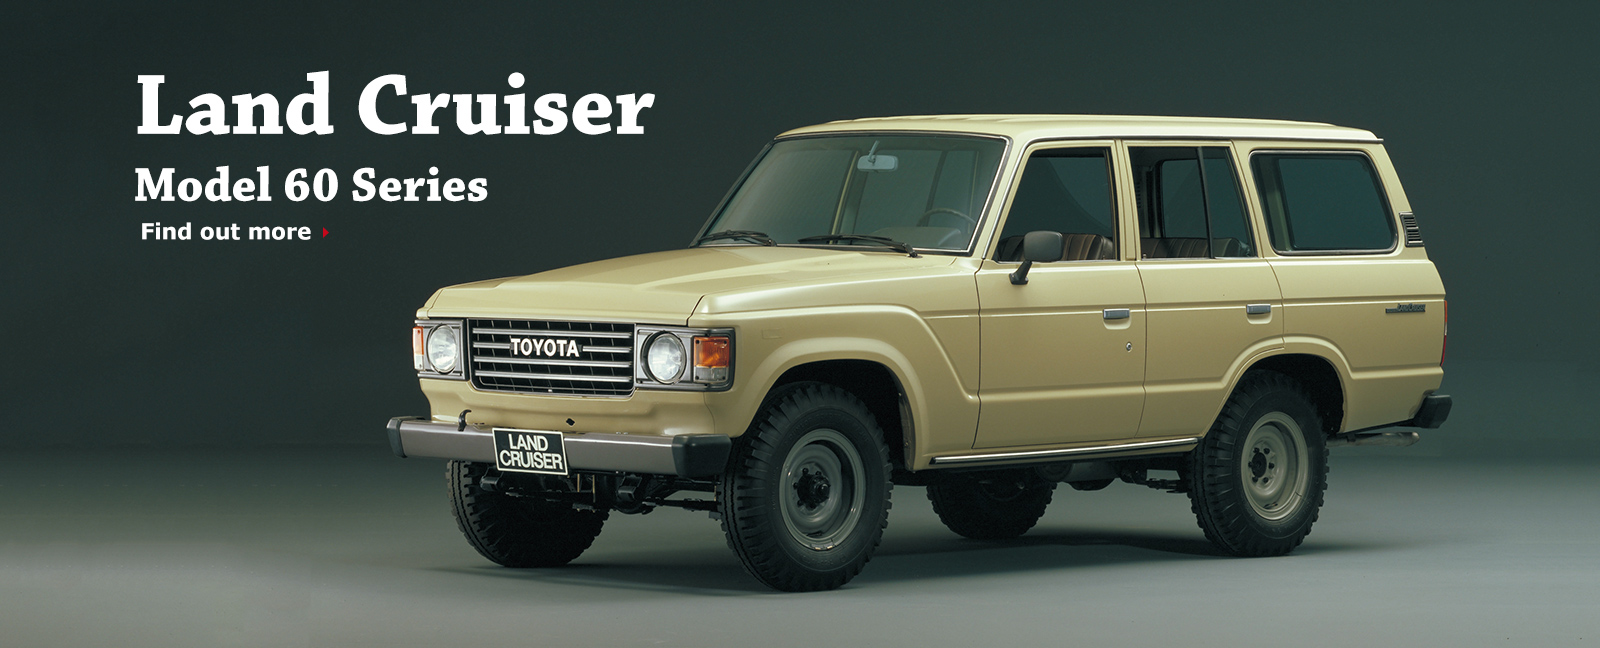 Images of Toyota Land Cruiser | 1600x648